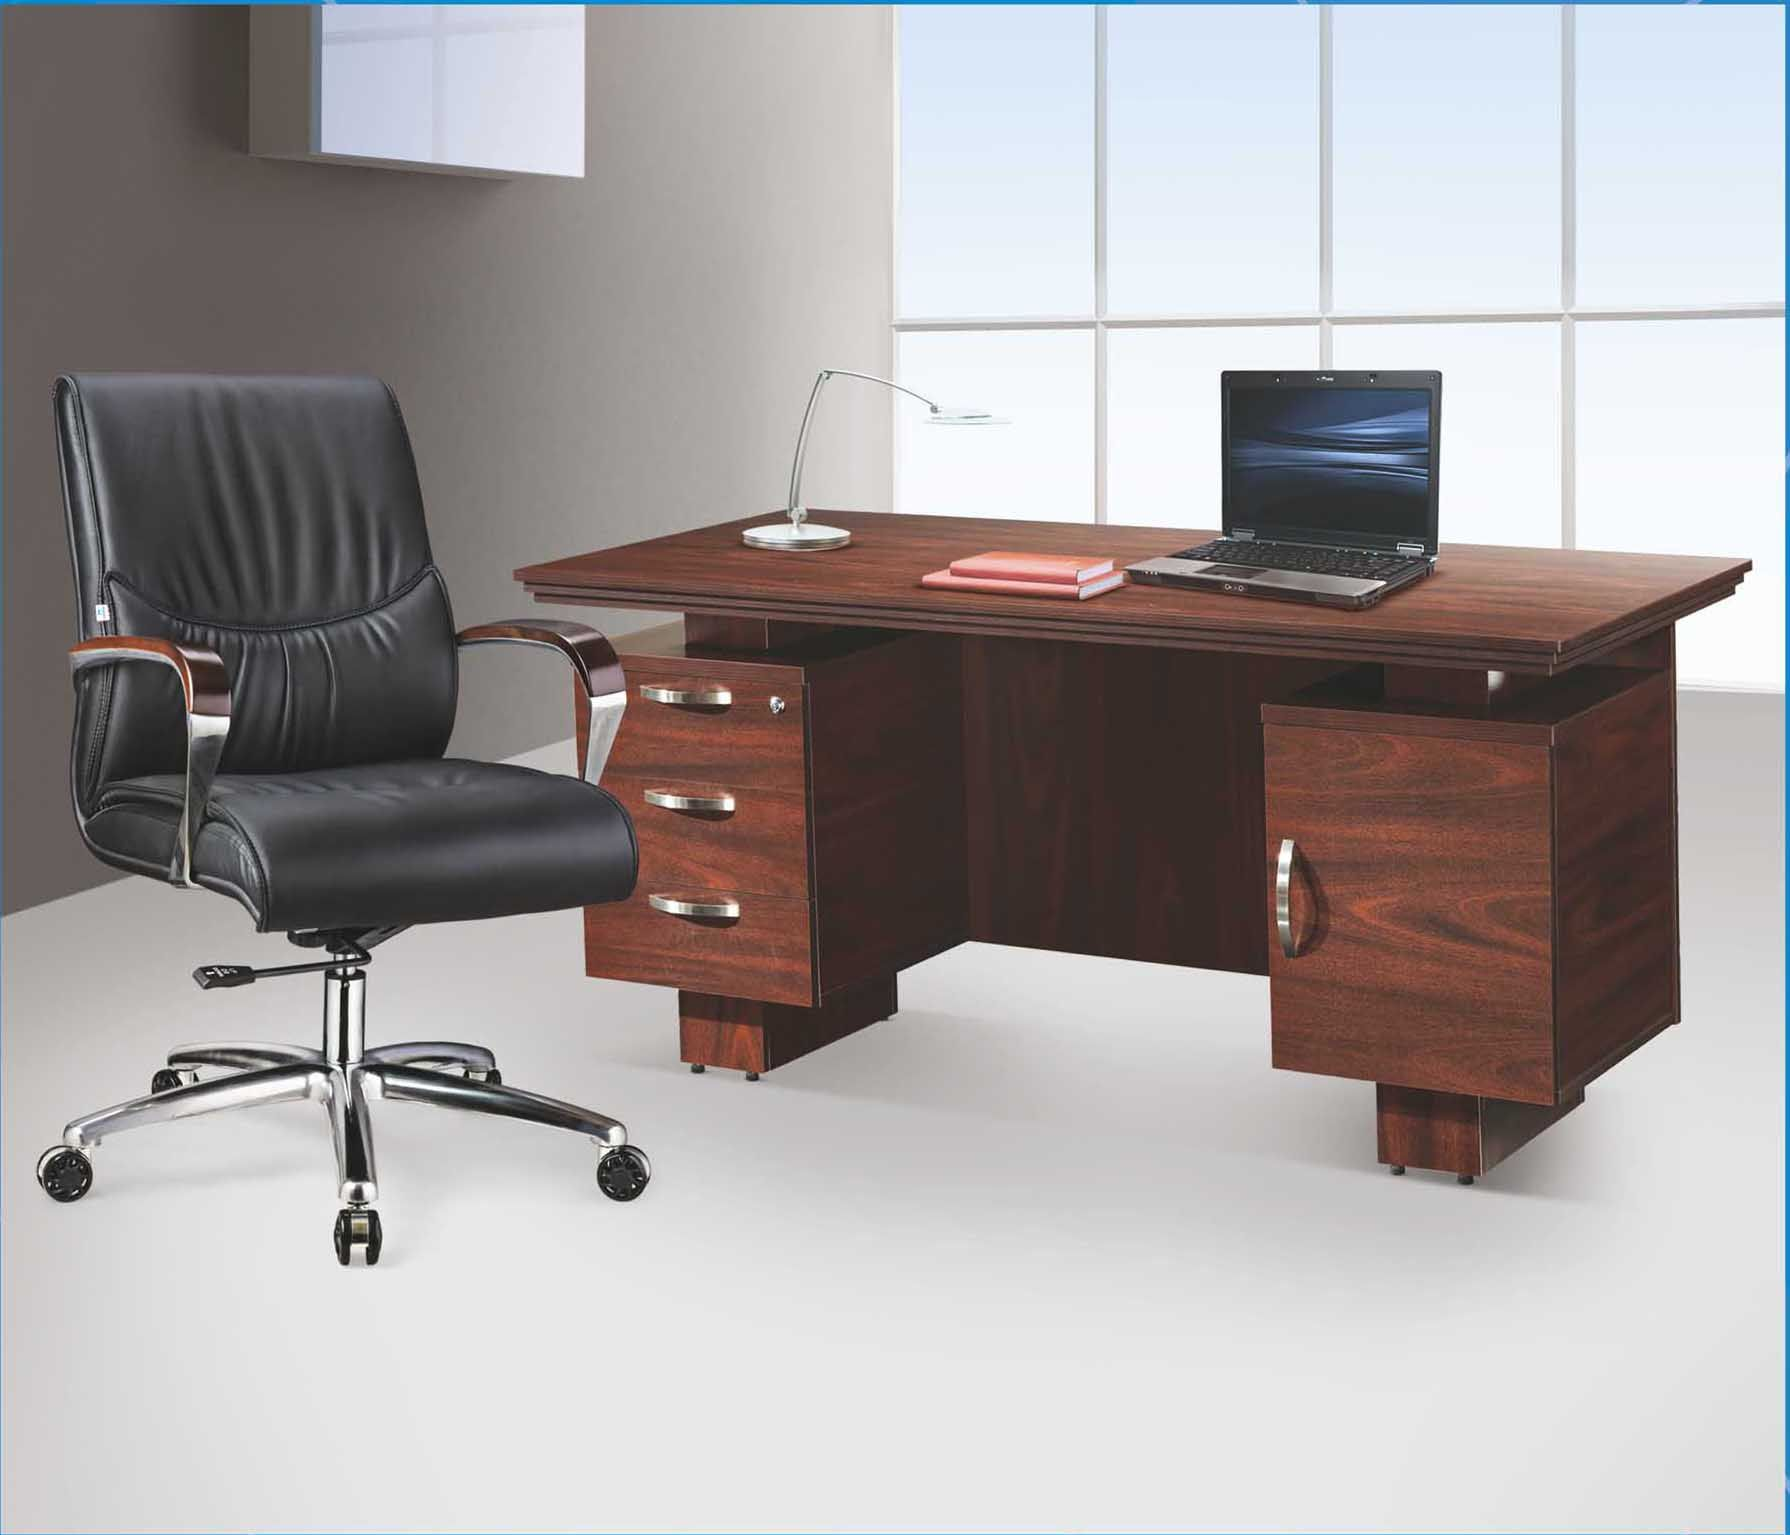 Buy modular office furniture online